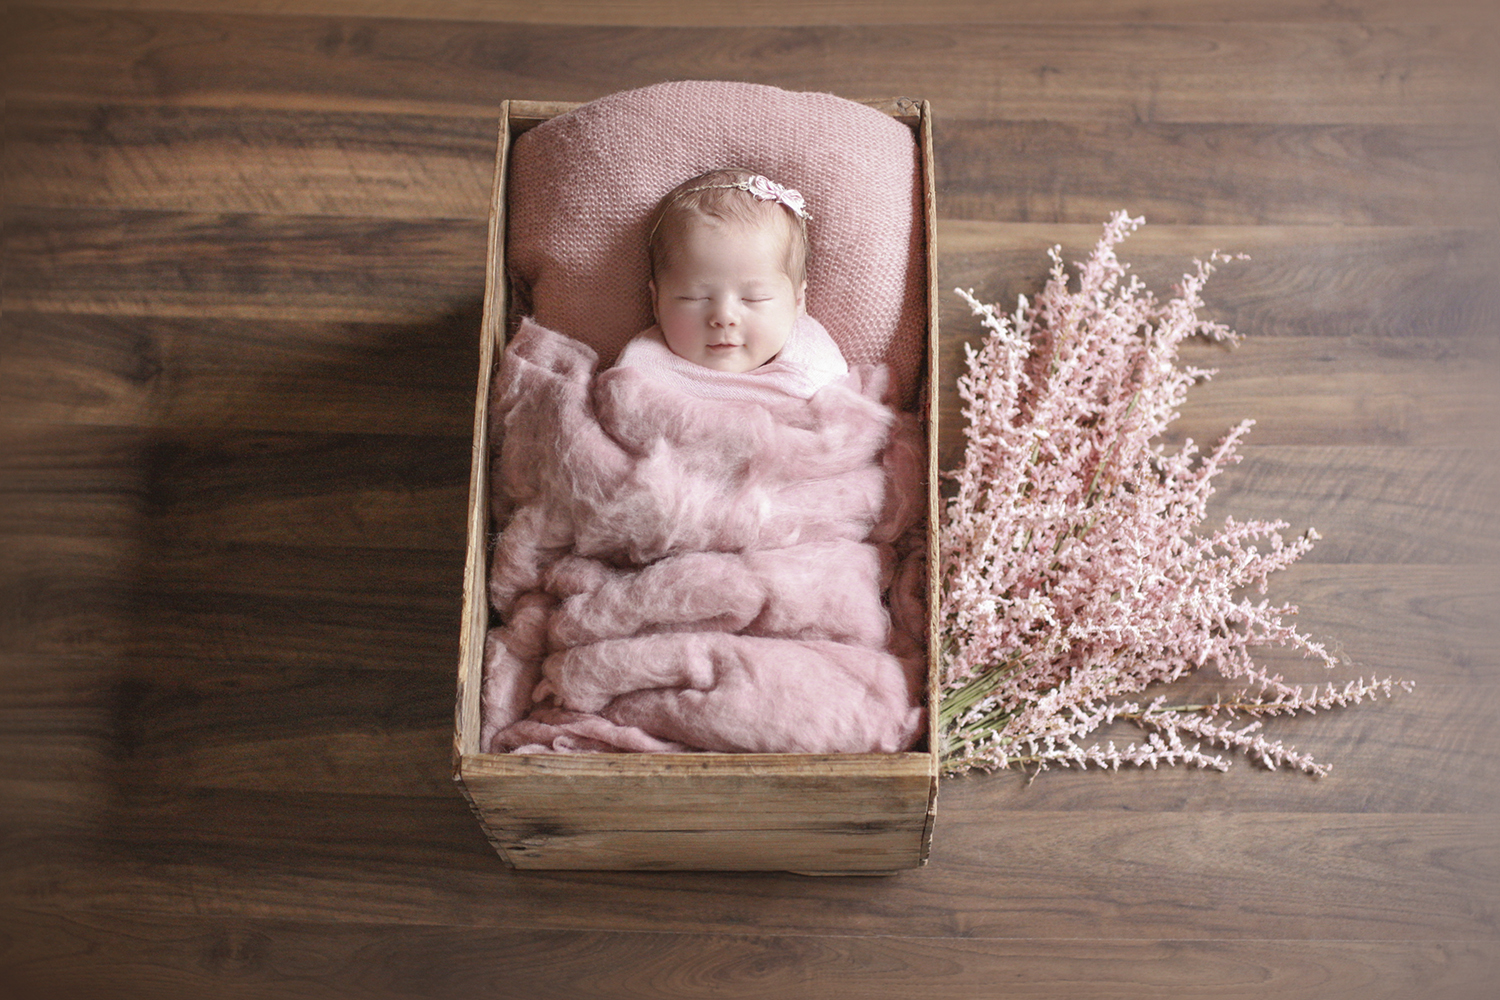 Newborn baby girl sleeping in wooden crate with pink blanket and felt and wrap and flowers on wooden floor